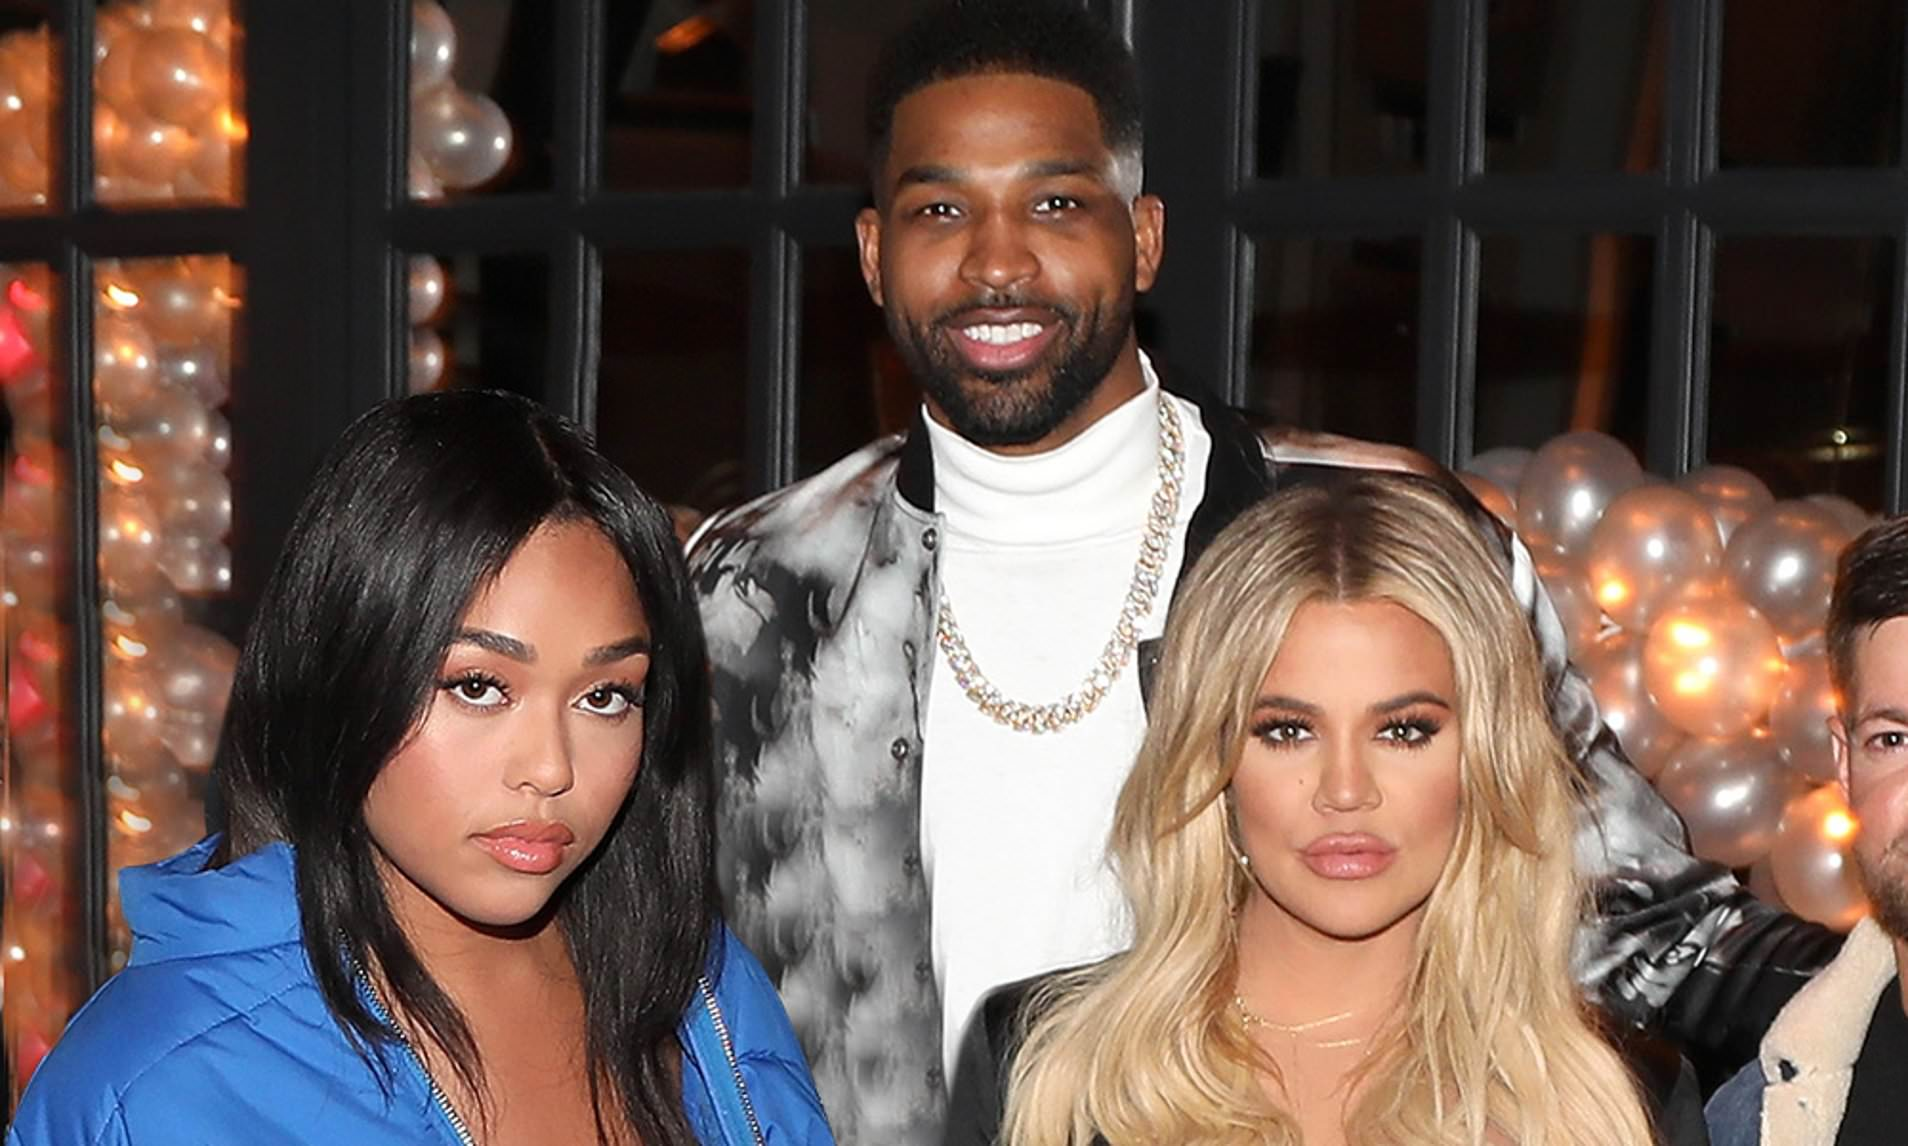 Khloe Kardashian And Tristan Thompson Have Troubles Watching The Jordyn Woods Drama On The New KUWK Season